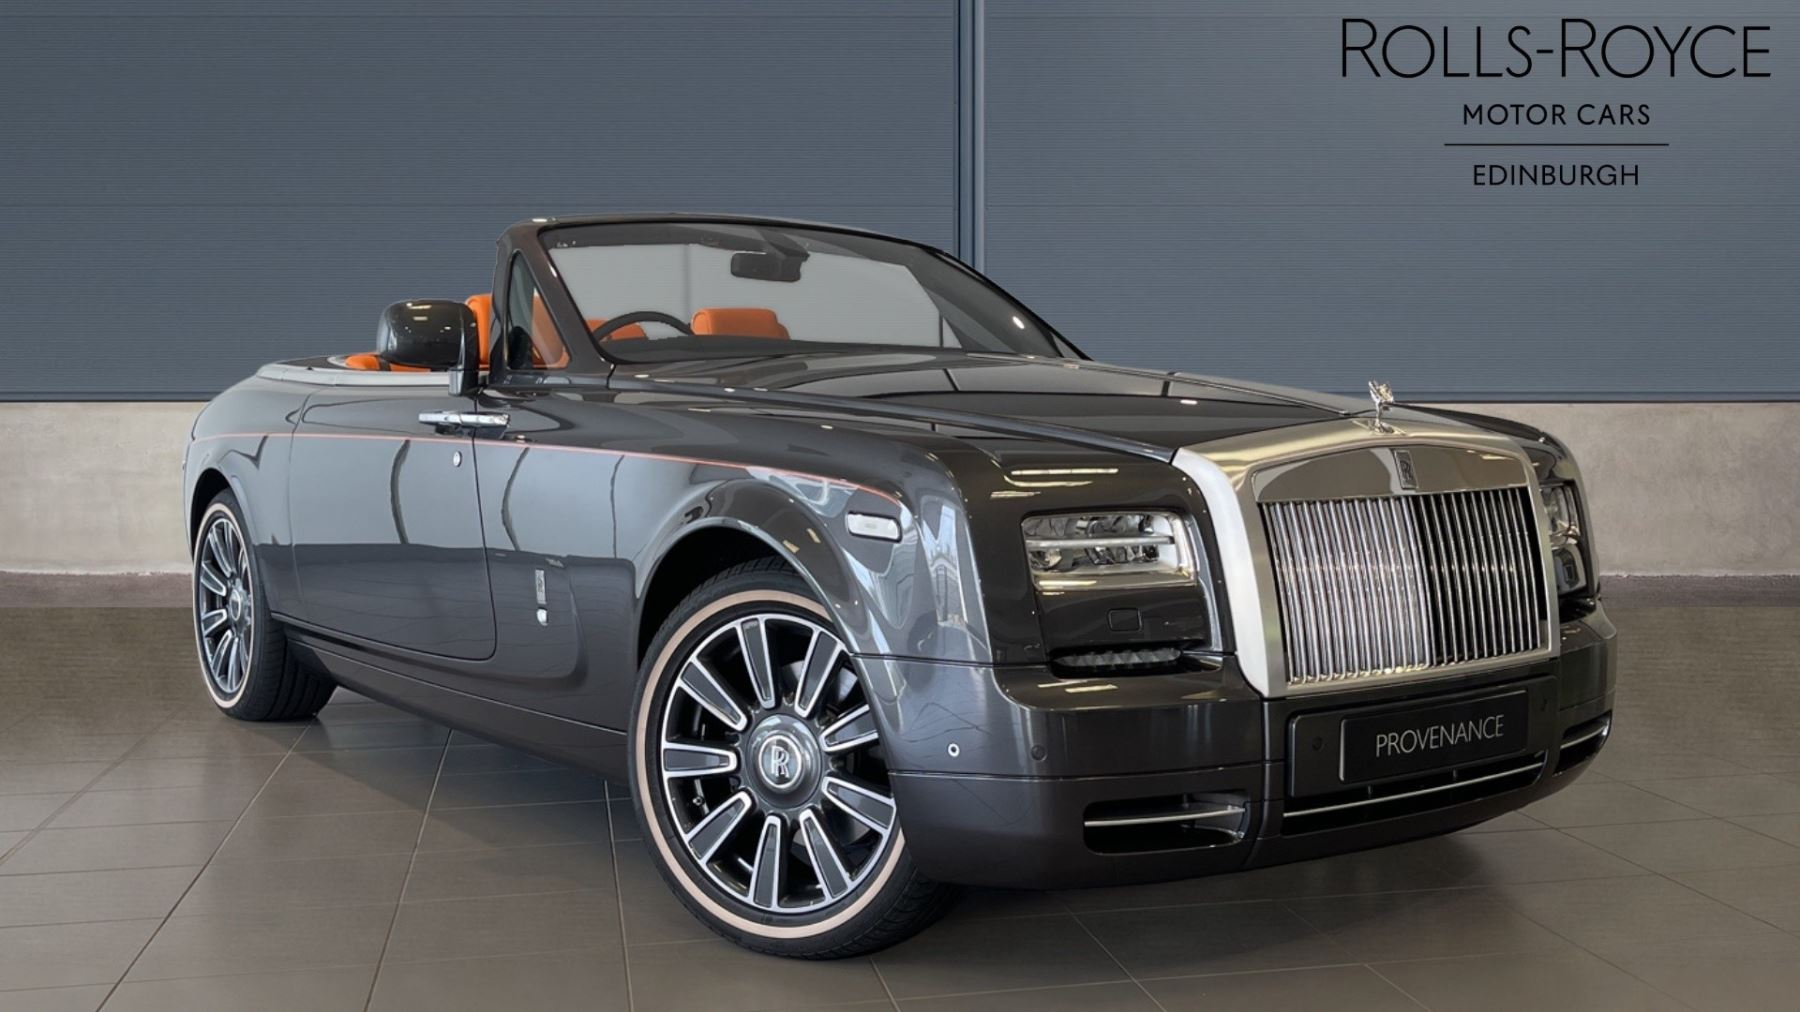 Rolls-Royce Phantom II 2dr Auto - 1 Owner - 850 Miles - 1 of 1  6.7 Automatic Convertible (2016) image